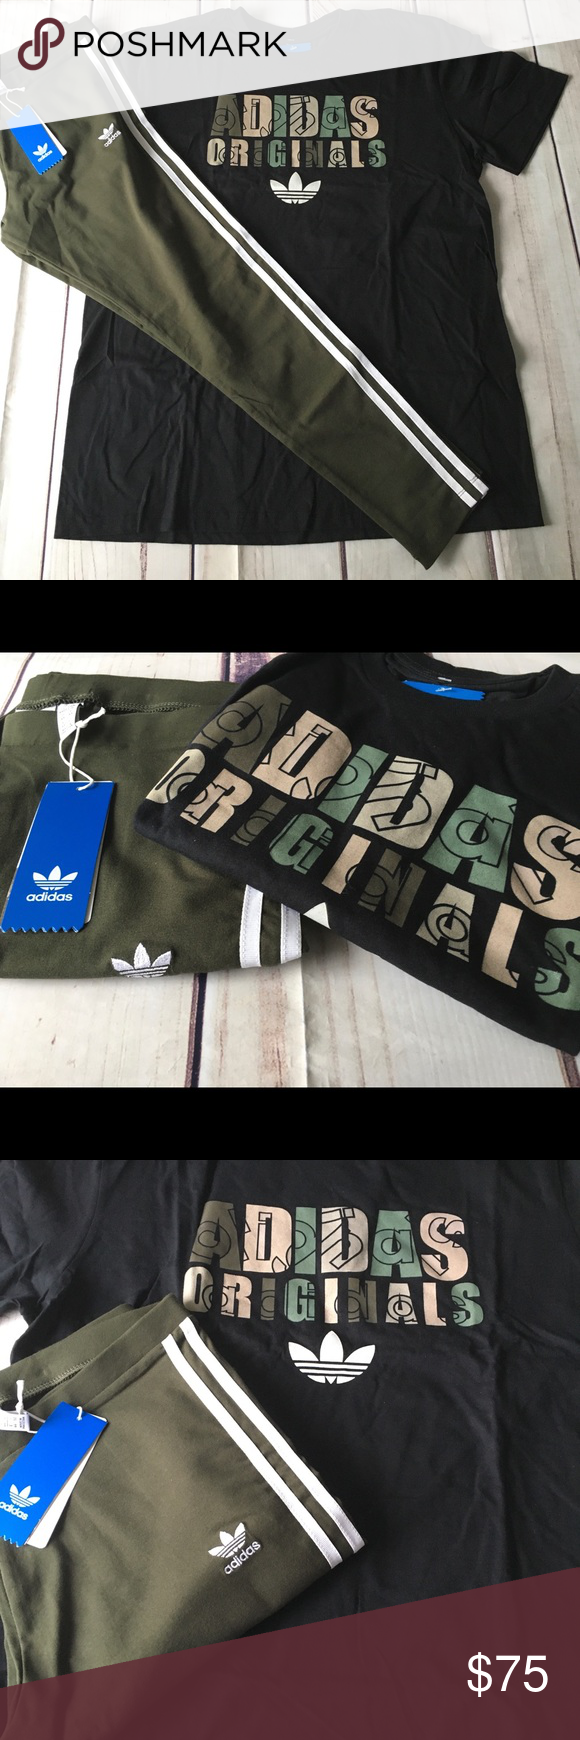 New adidas outfit olive leggings T shirt set Large New